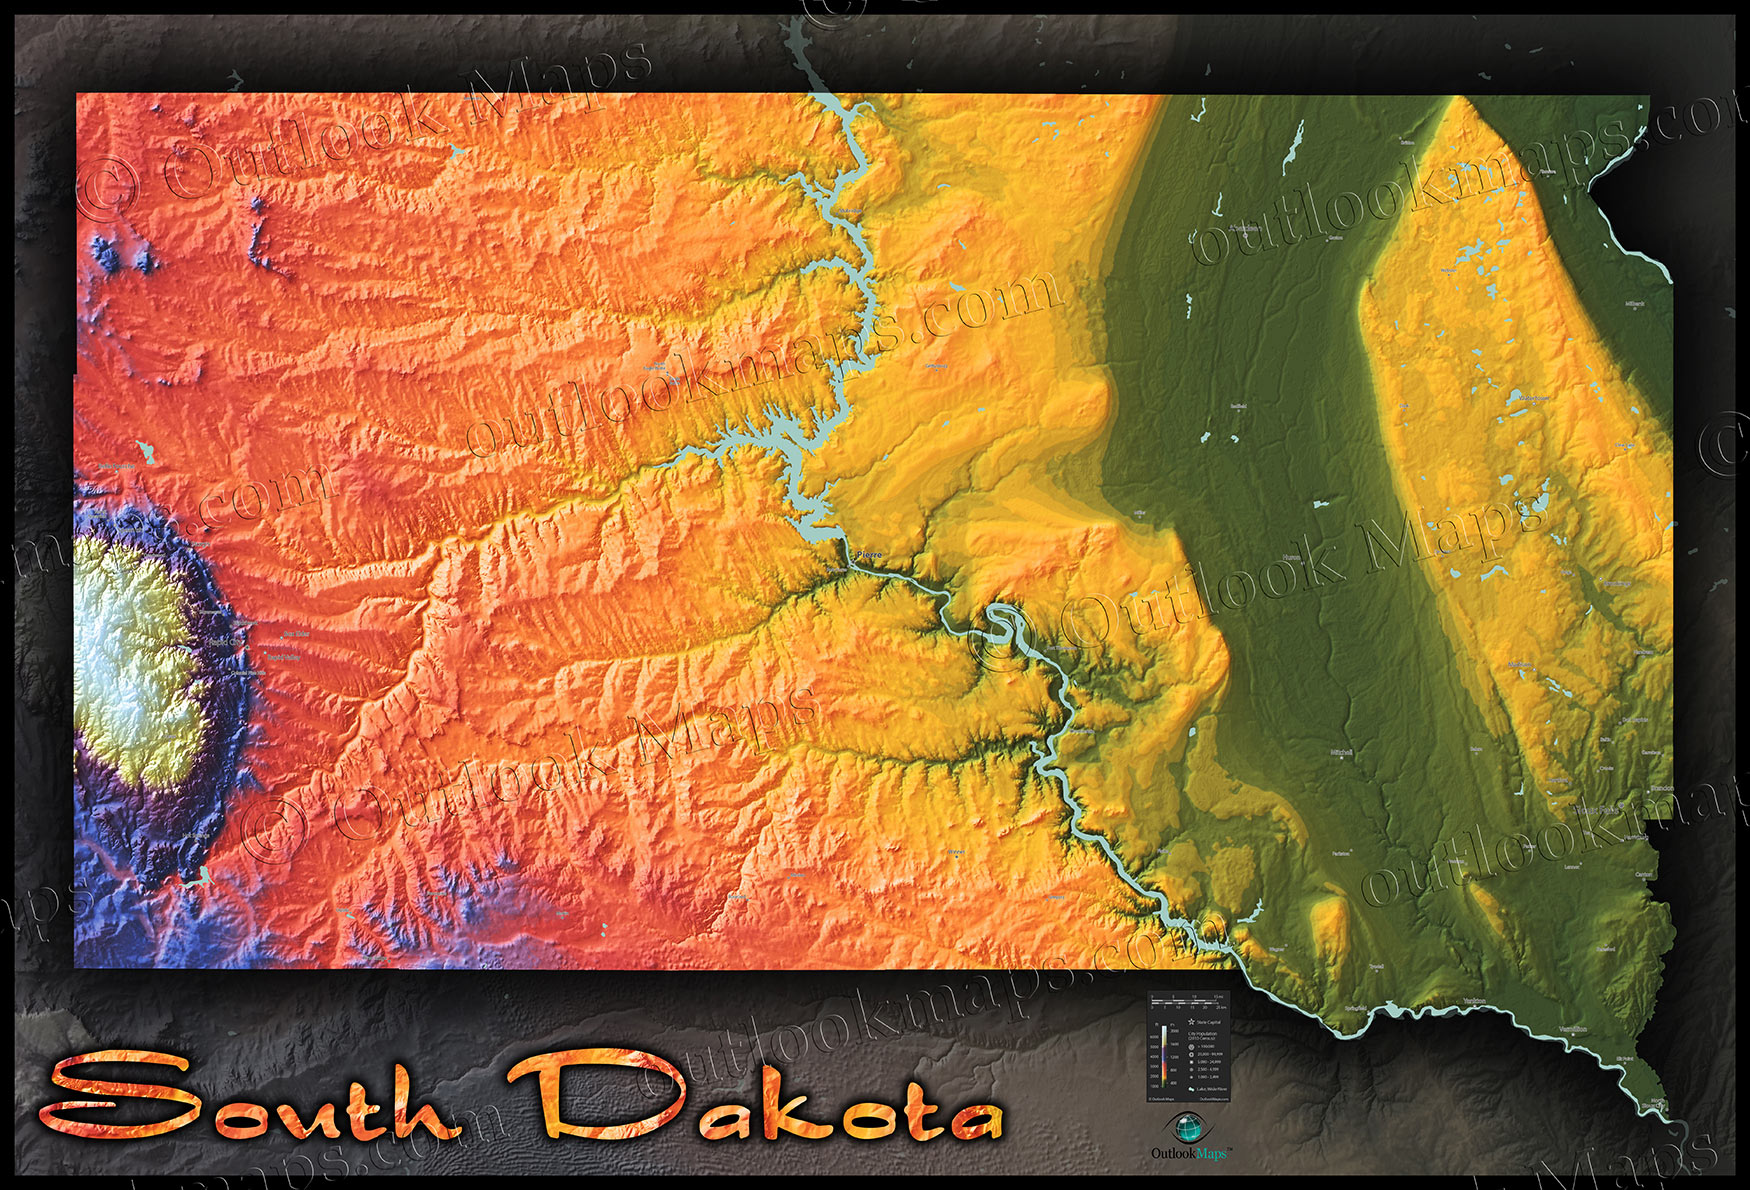 South Dakota Topography Map | Physical Terrain in Bold Colors